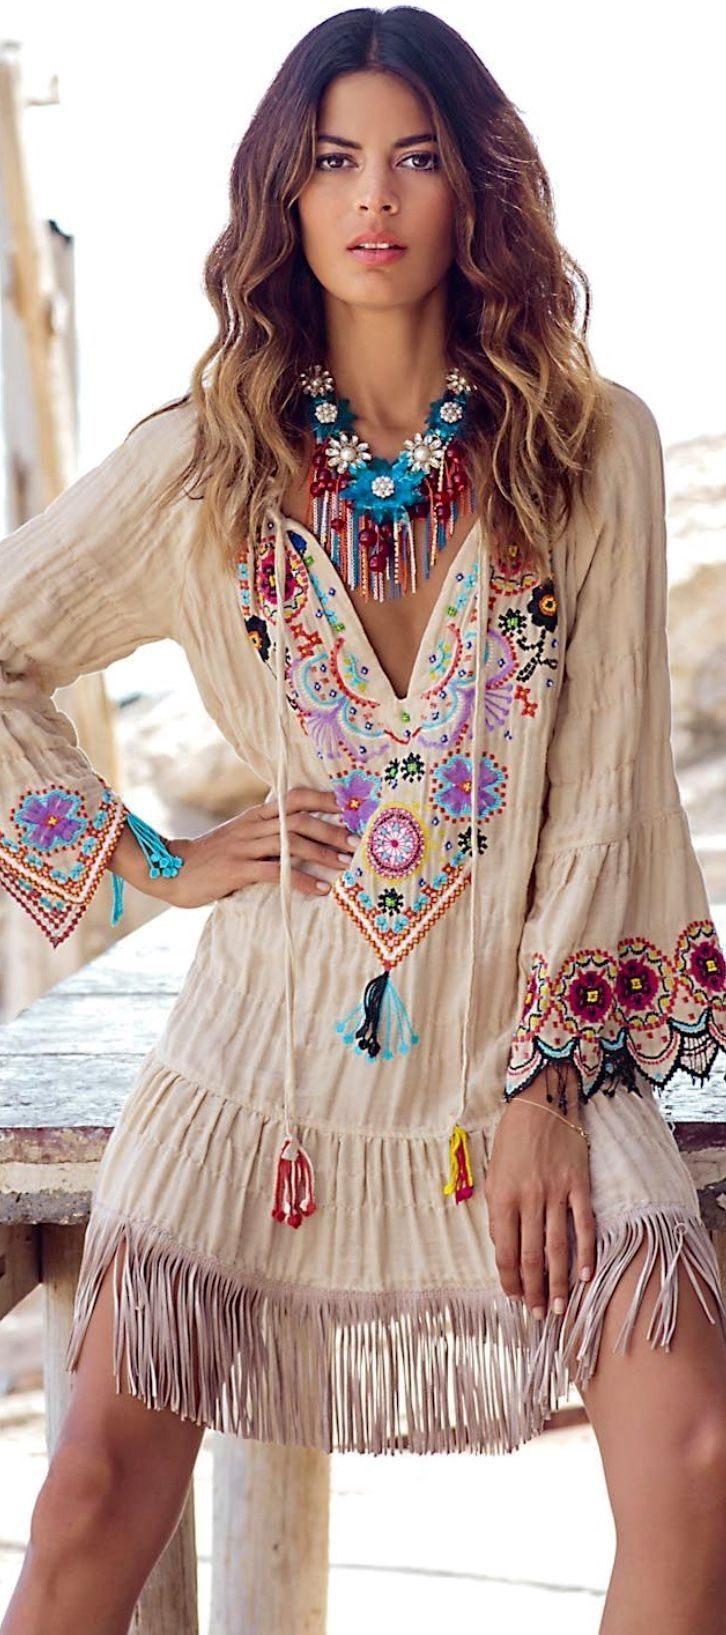 60 of the most popular spring boho outfit ideas on pinterest fringe dress fashion spring and. Black Bedroom Furniture Sets. Home Design Ideas